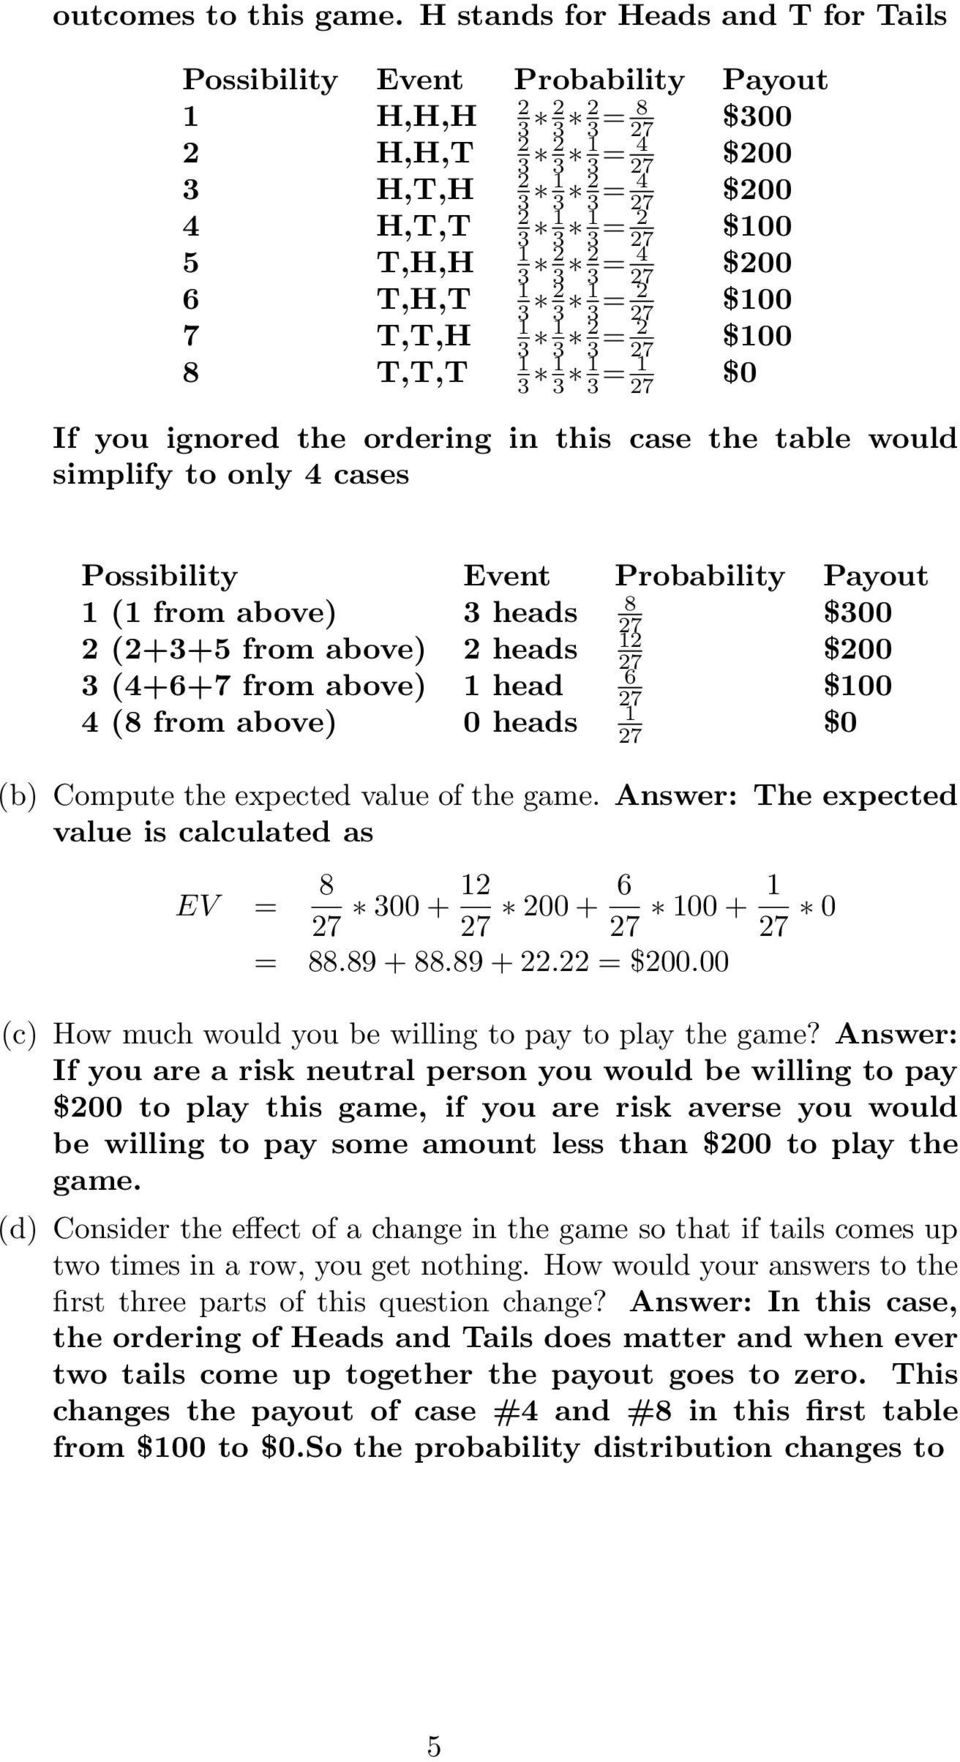 27 6 T,H,T 3 2 3 3 = 2 27 0 7 T,T,H 3 3 2 3 = 2 27 0 8 T,T,T 3 3 3 = 27 If you ignored the ordering in this case the table would simplify to only 4 cases Possibility Event Probability Payout 8 ( from